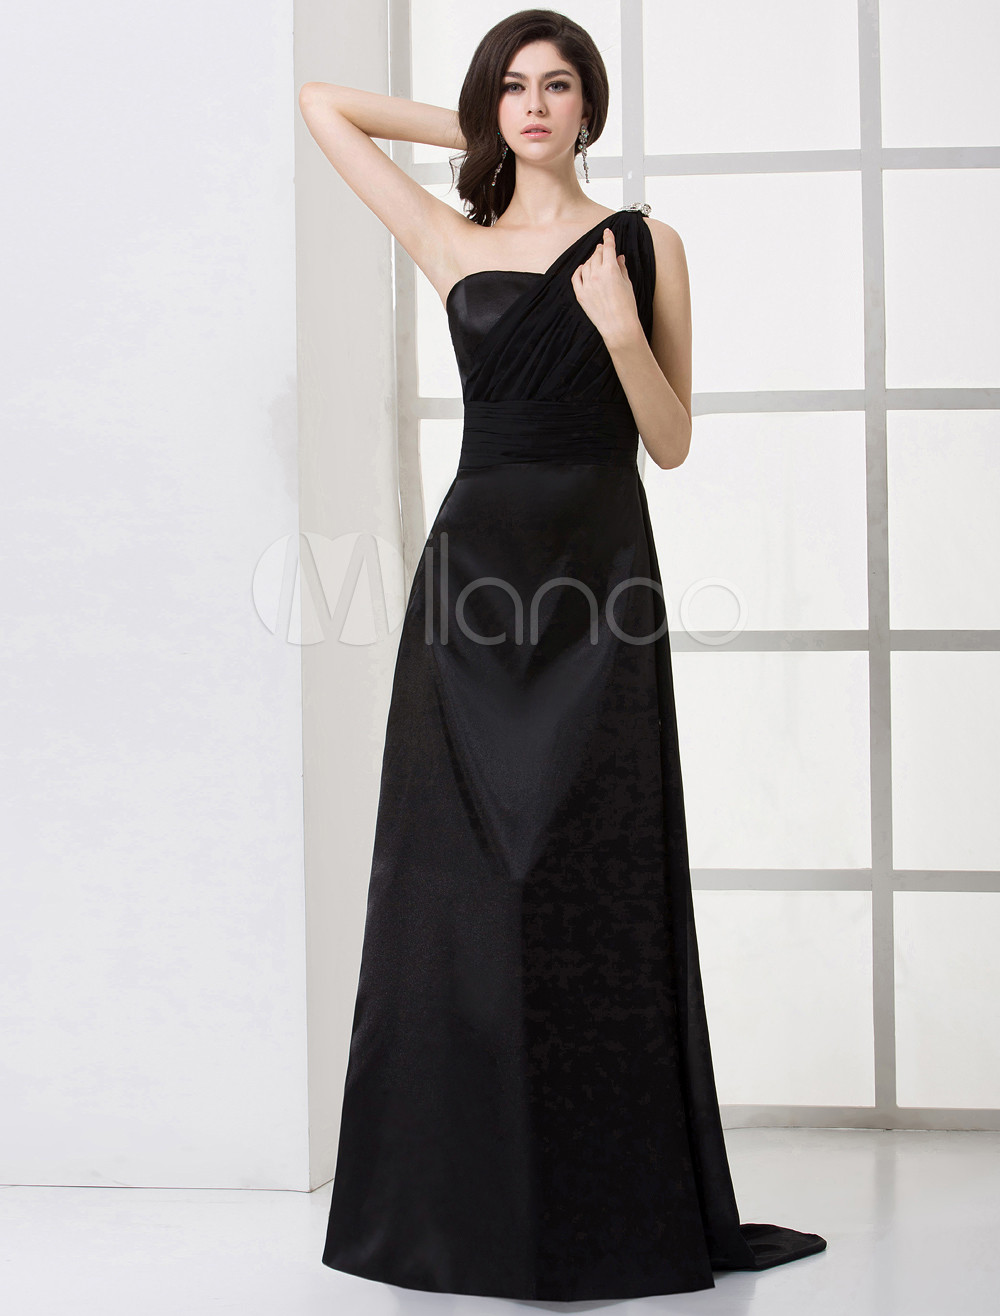 Classical Black Chiffon One-Shoulder Floor-length Maternity Bridesmaid Dress